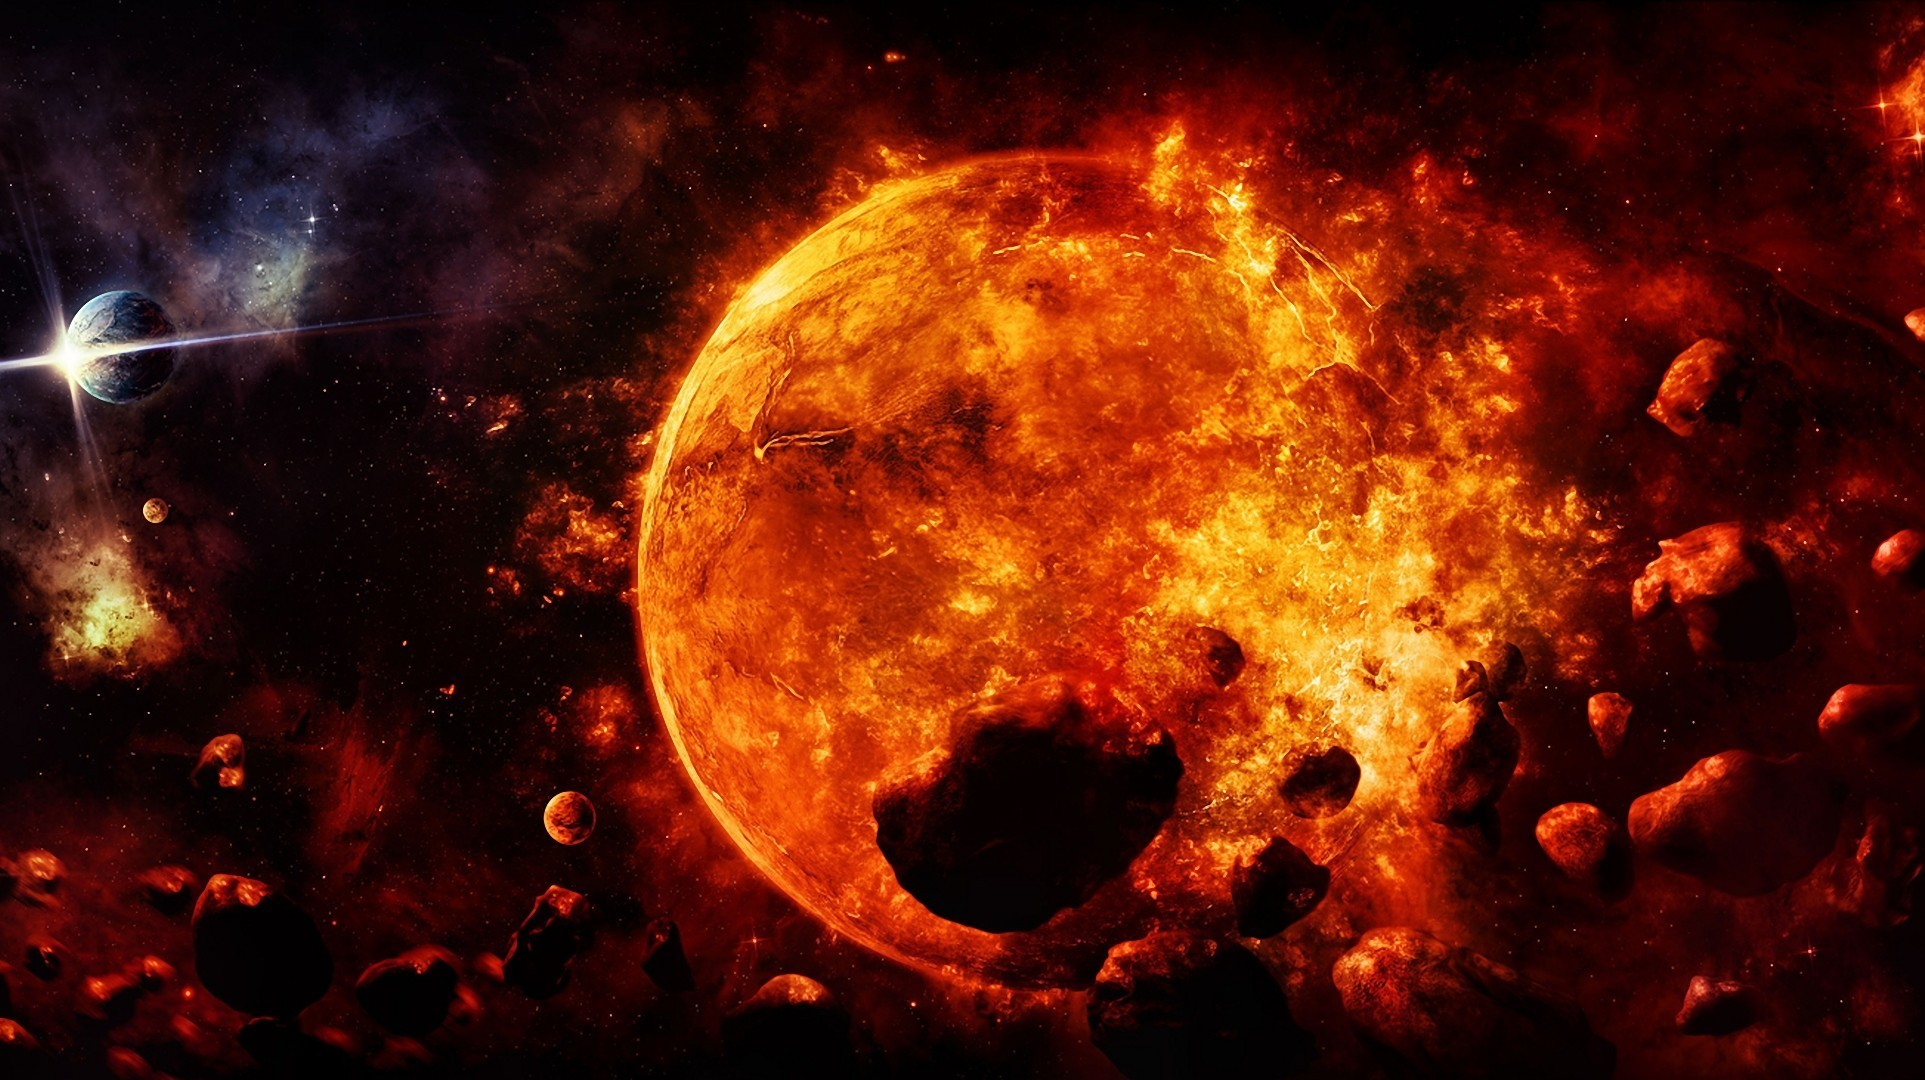 Fire Planet Wallpaper Sci fi Sun Planets Fire Stars